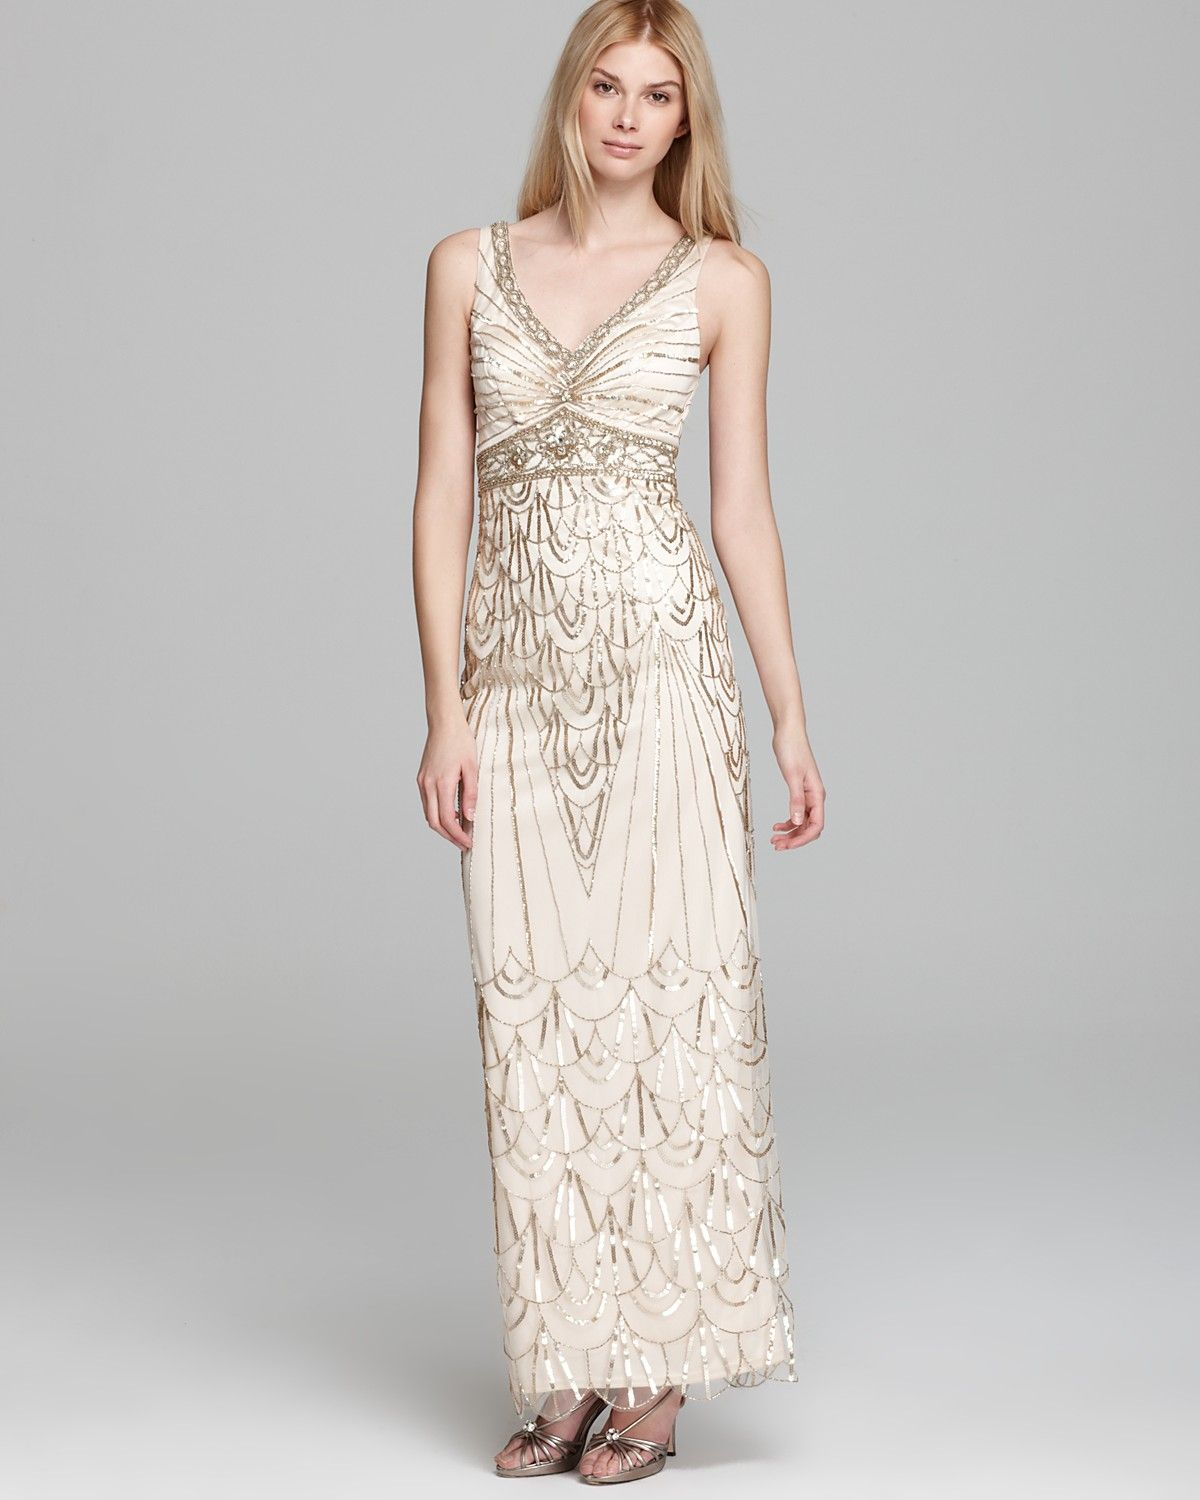 Sue Wong Gown - V Neck Beaded | Bloomingdales | Wedding | Pinterest ...